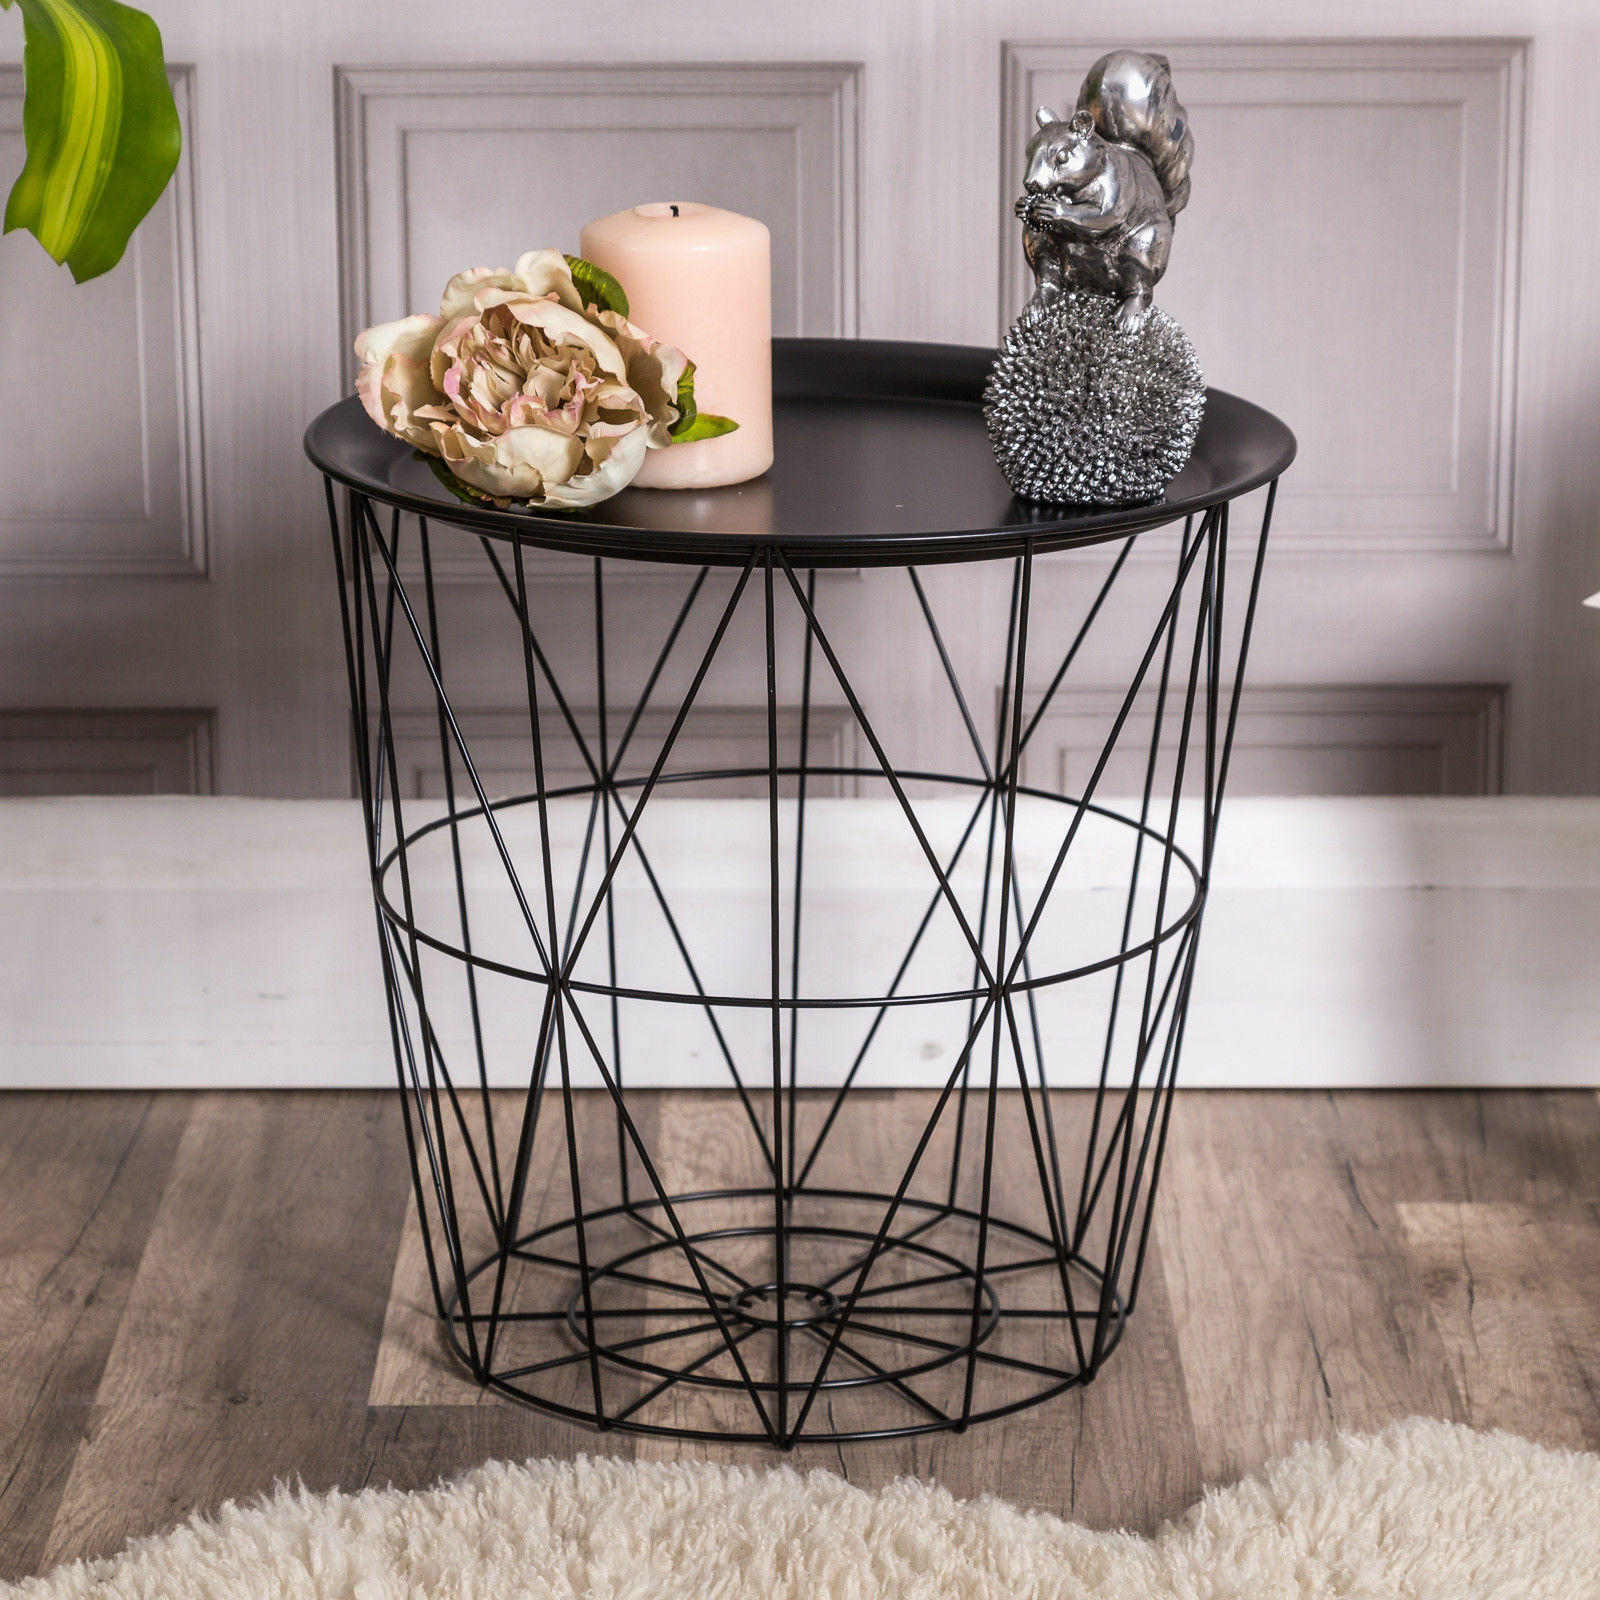 Black geometric wire side table basket tray storage occasional lamp black geometric wire side table basket tray storage occasional lamp contemporary 1 of 2only 1 available keyboard keysfo